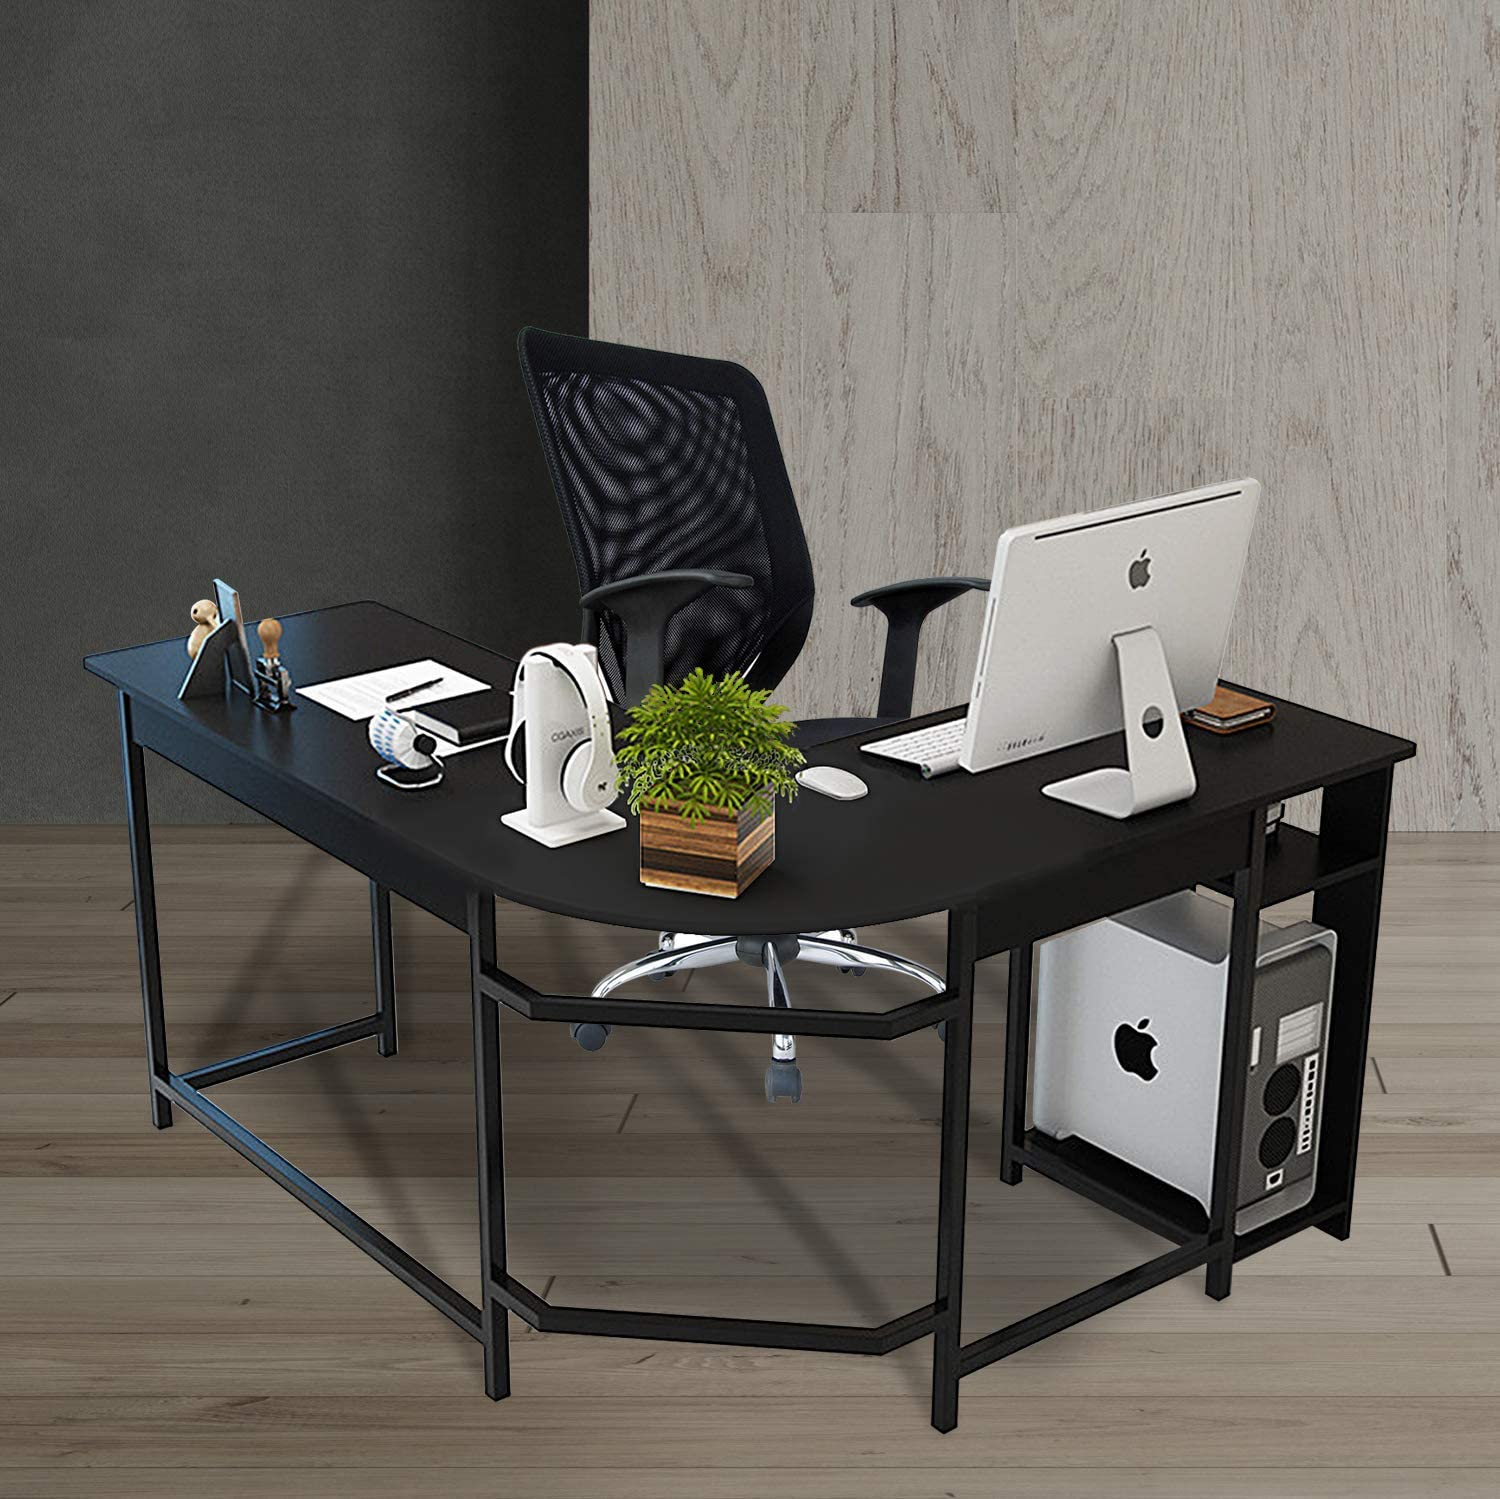 TY ARTS & CULTURE - L-Shaped Corner Desk Gaming Desk PC Table Office Computer Desk with Wood Laptop Black Frame Work Station Study Home Office Furniture | Black